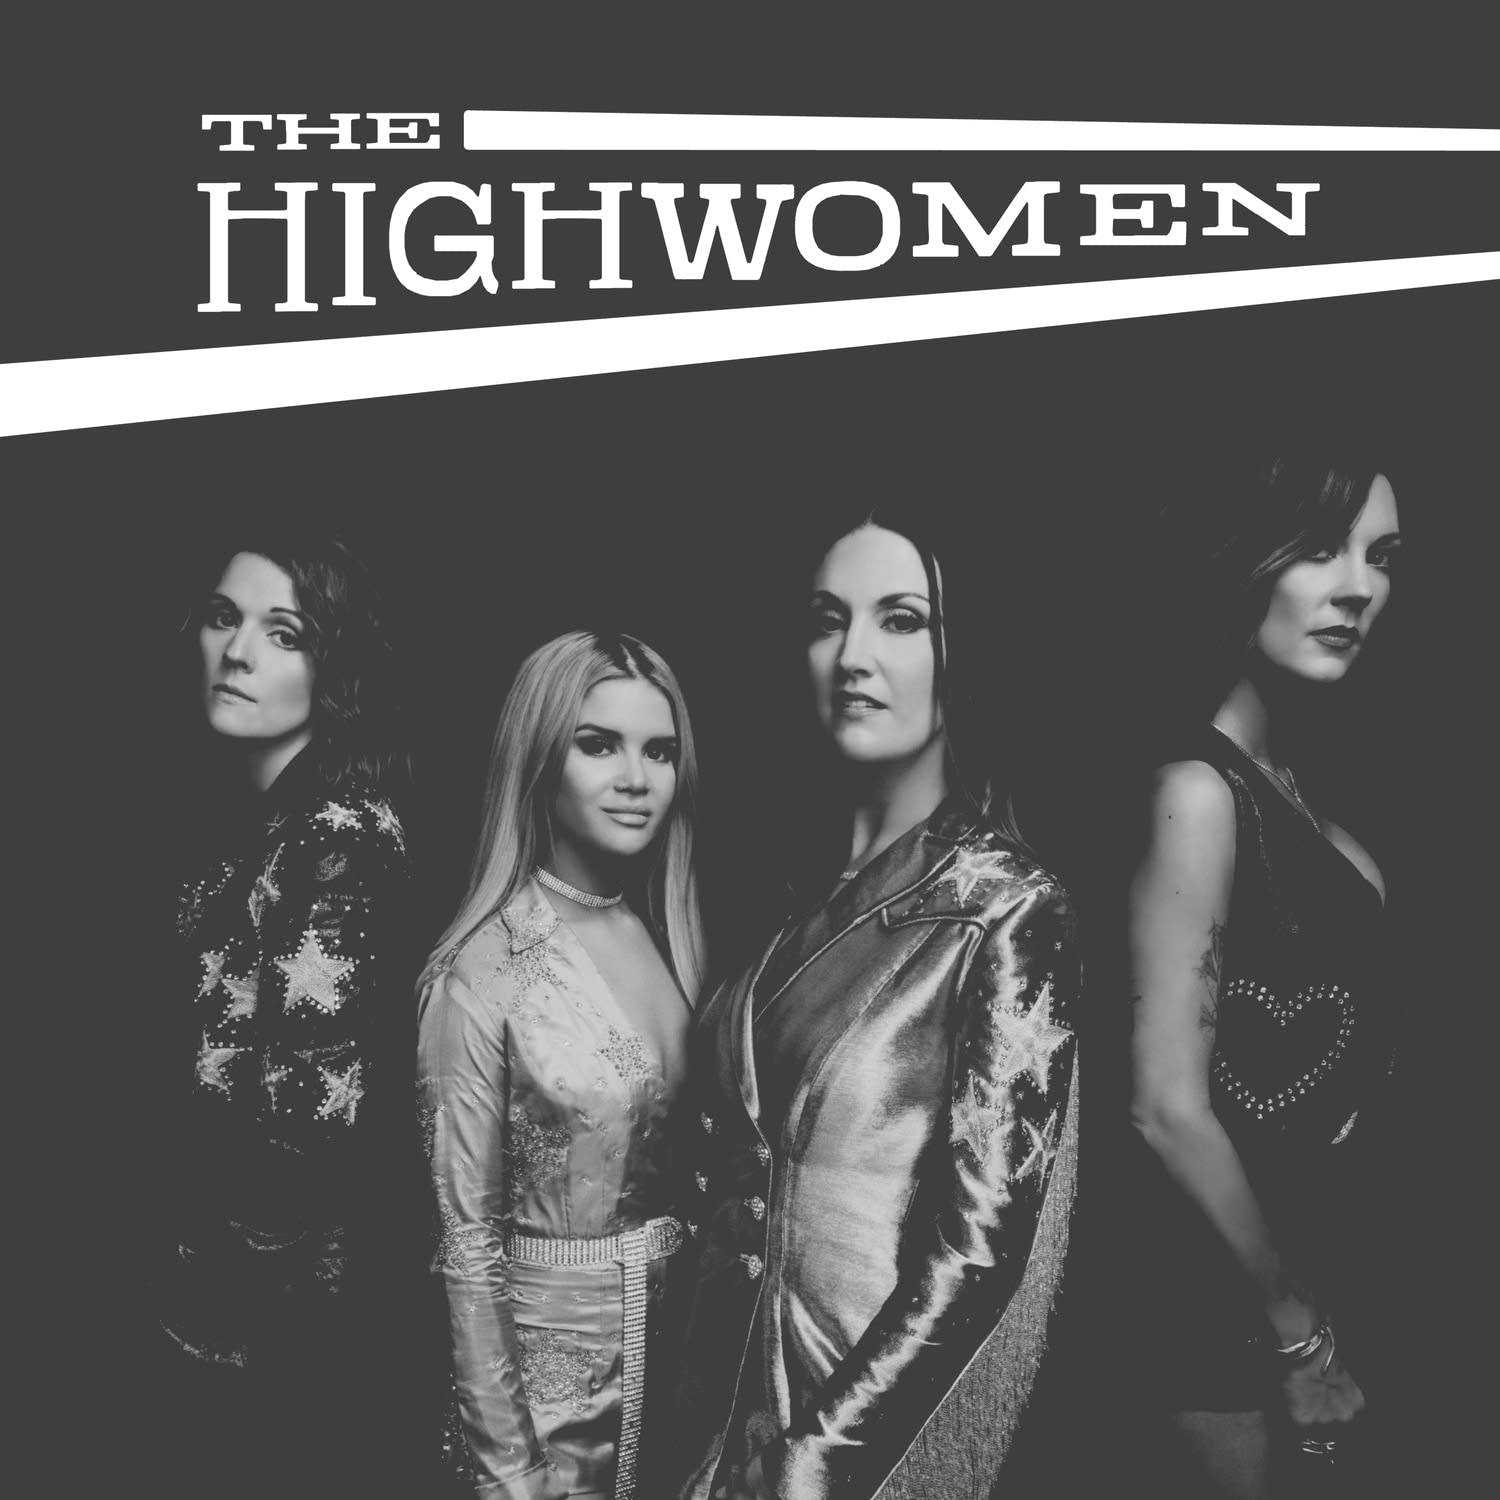 The Highwomen self-titled release